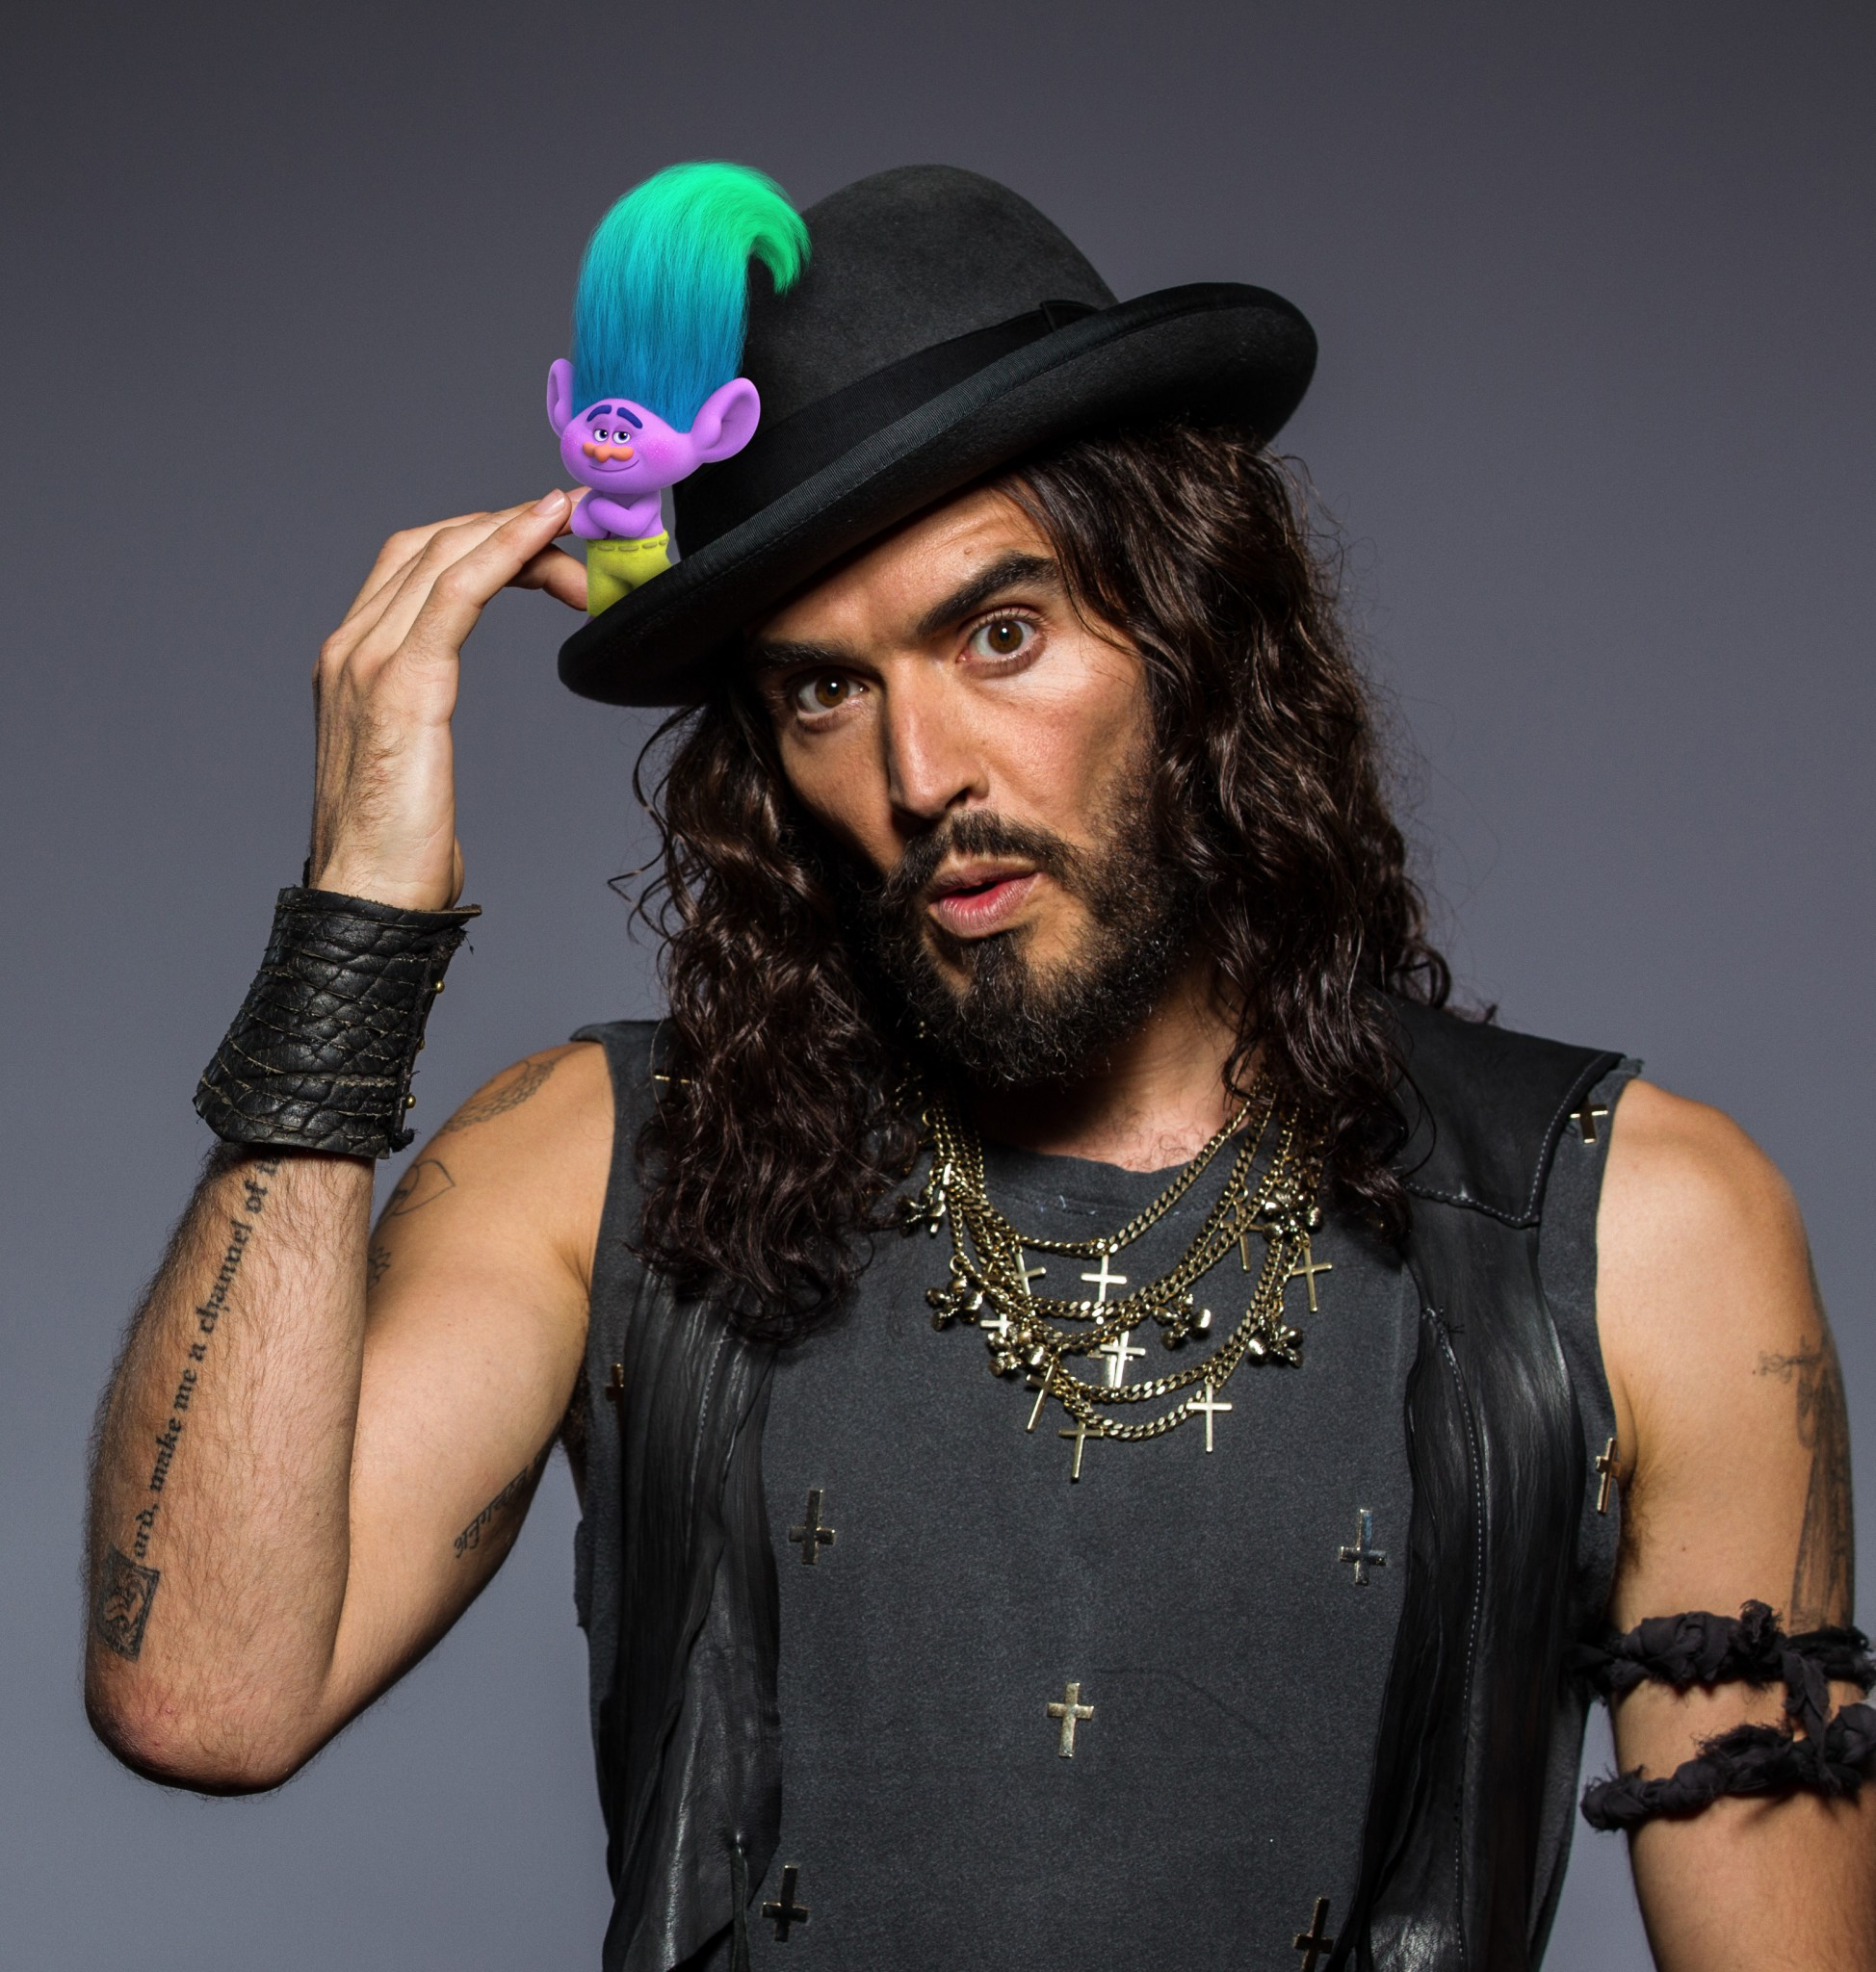 SYDNEY, AUSTRALIA - NOVEMBER 29: Comedian and actor Russell Brand poses at the 26th Annual ARIA Awards 2012 at the on November 29, 2012 in Sydney, Australia. (Photo by Mark Nolan/WireImage)